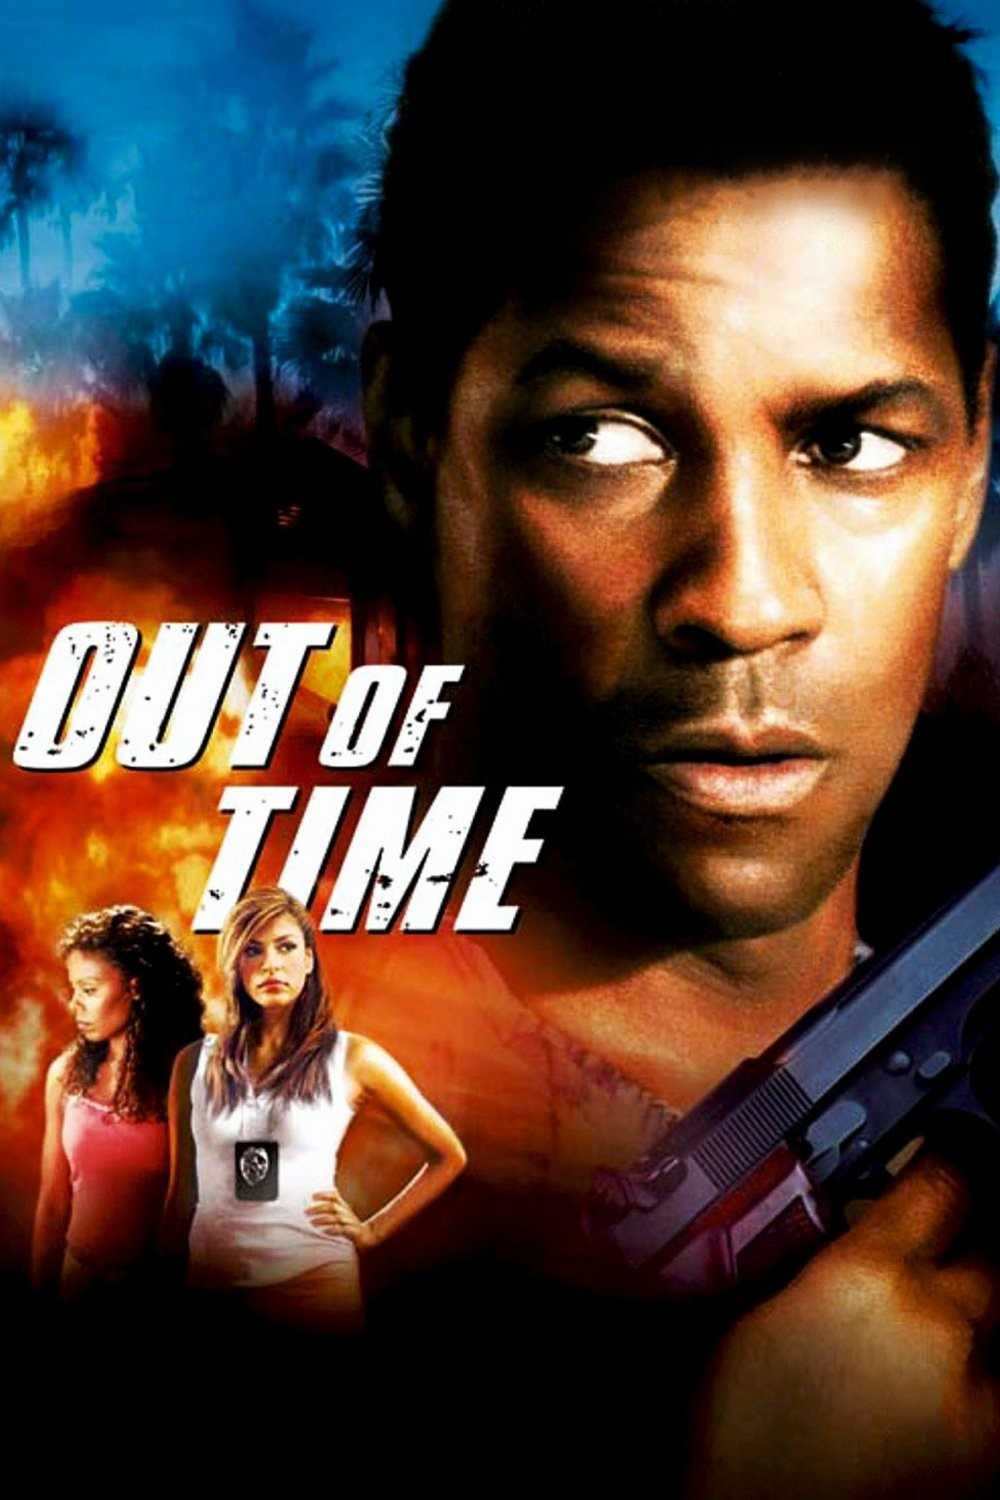 Watch Out of Time (2003) Free Online